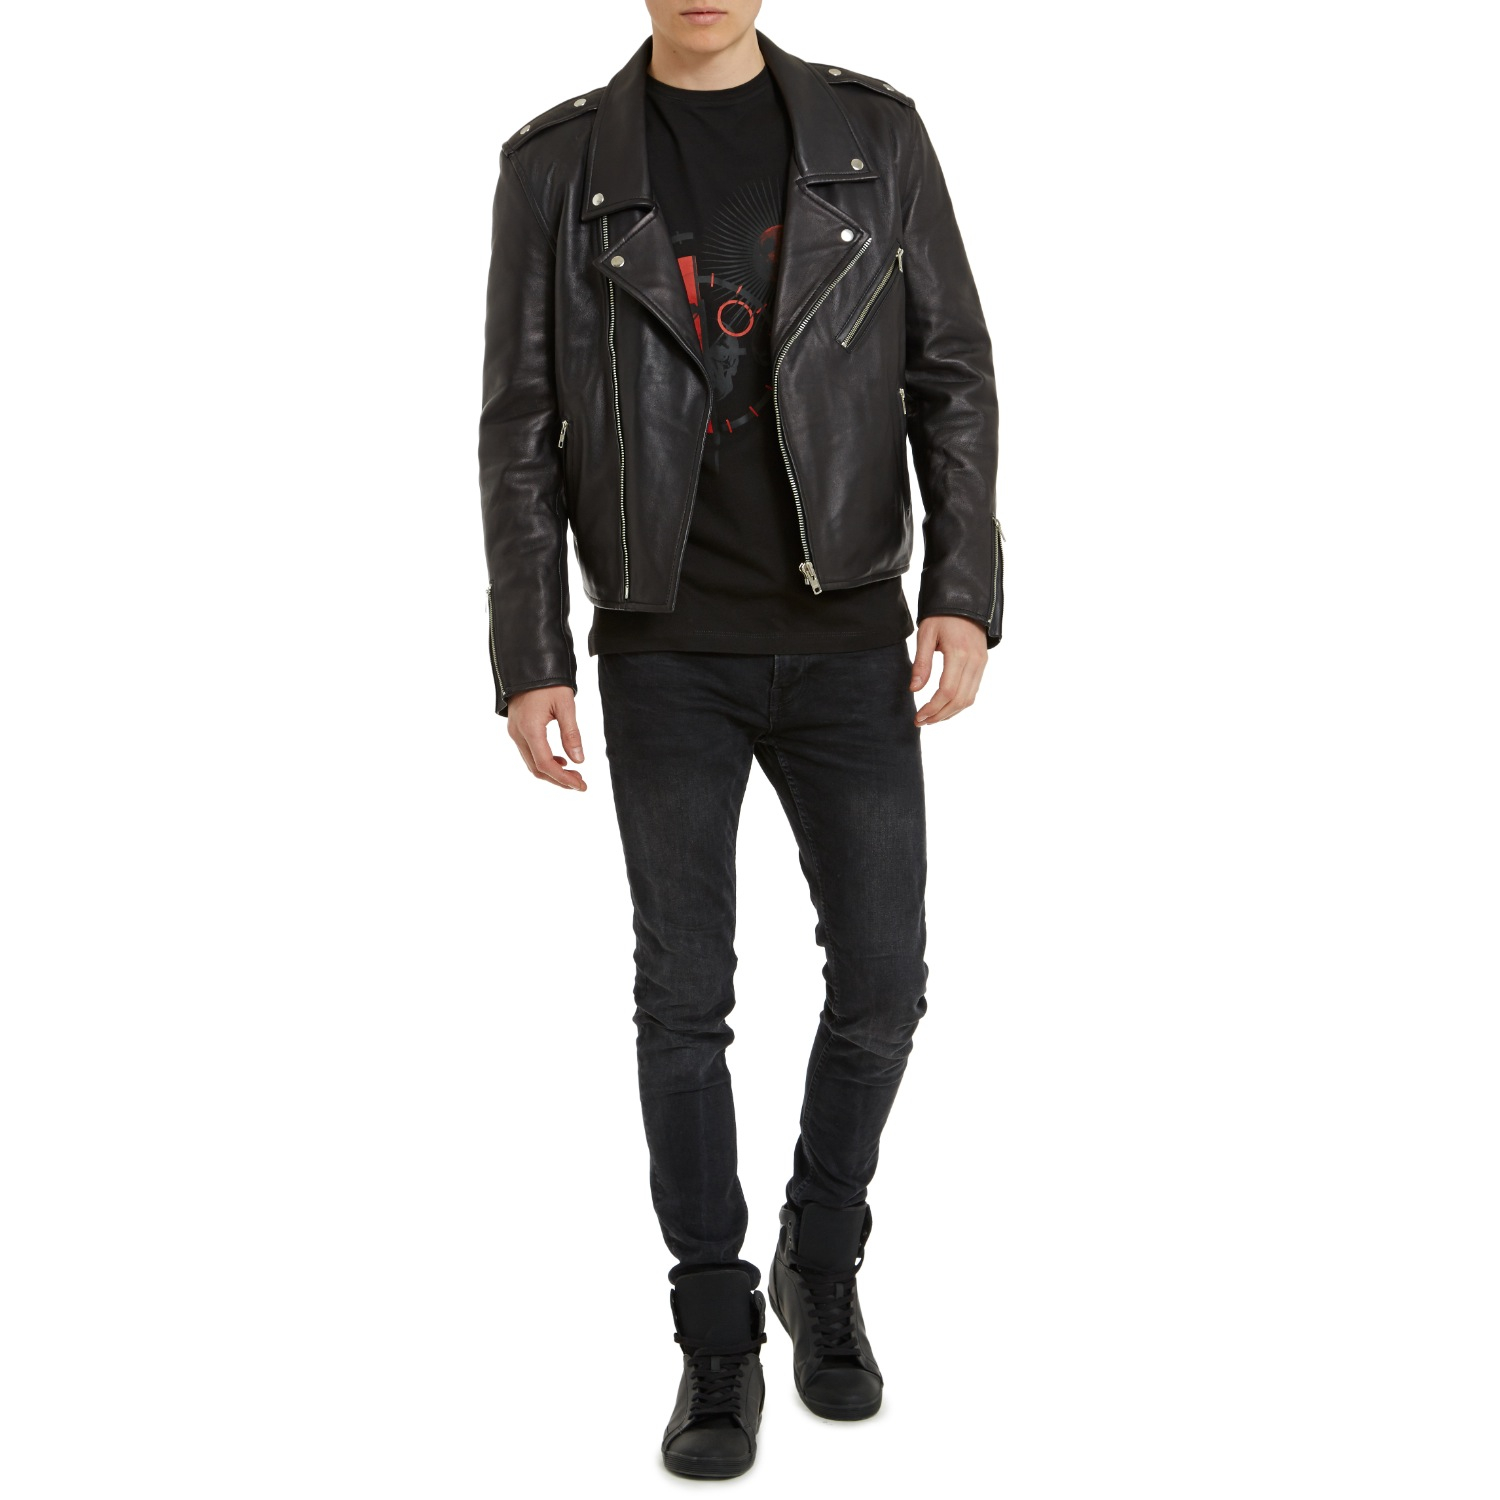 Find great deals on eBay for urban leather jackets. Shop with confidence.